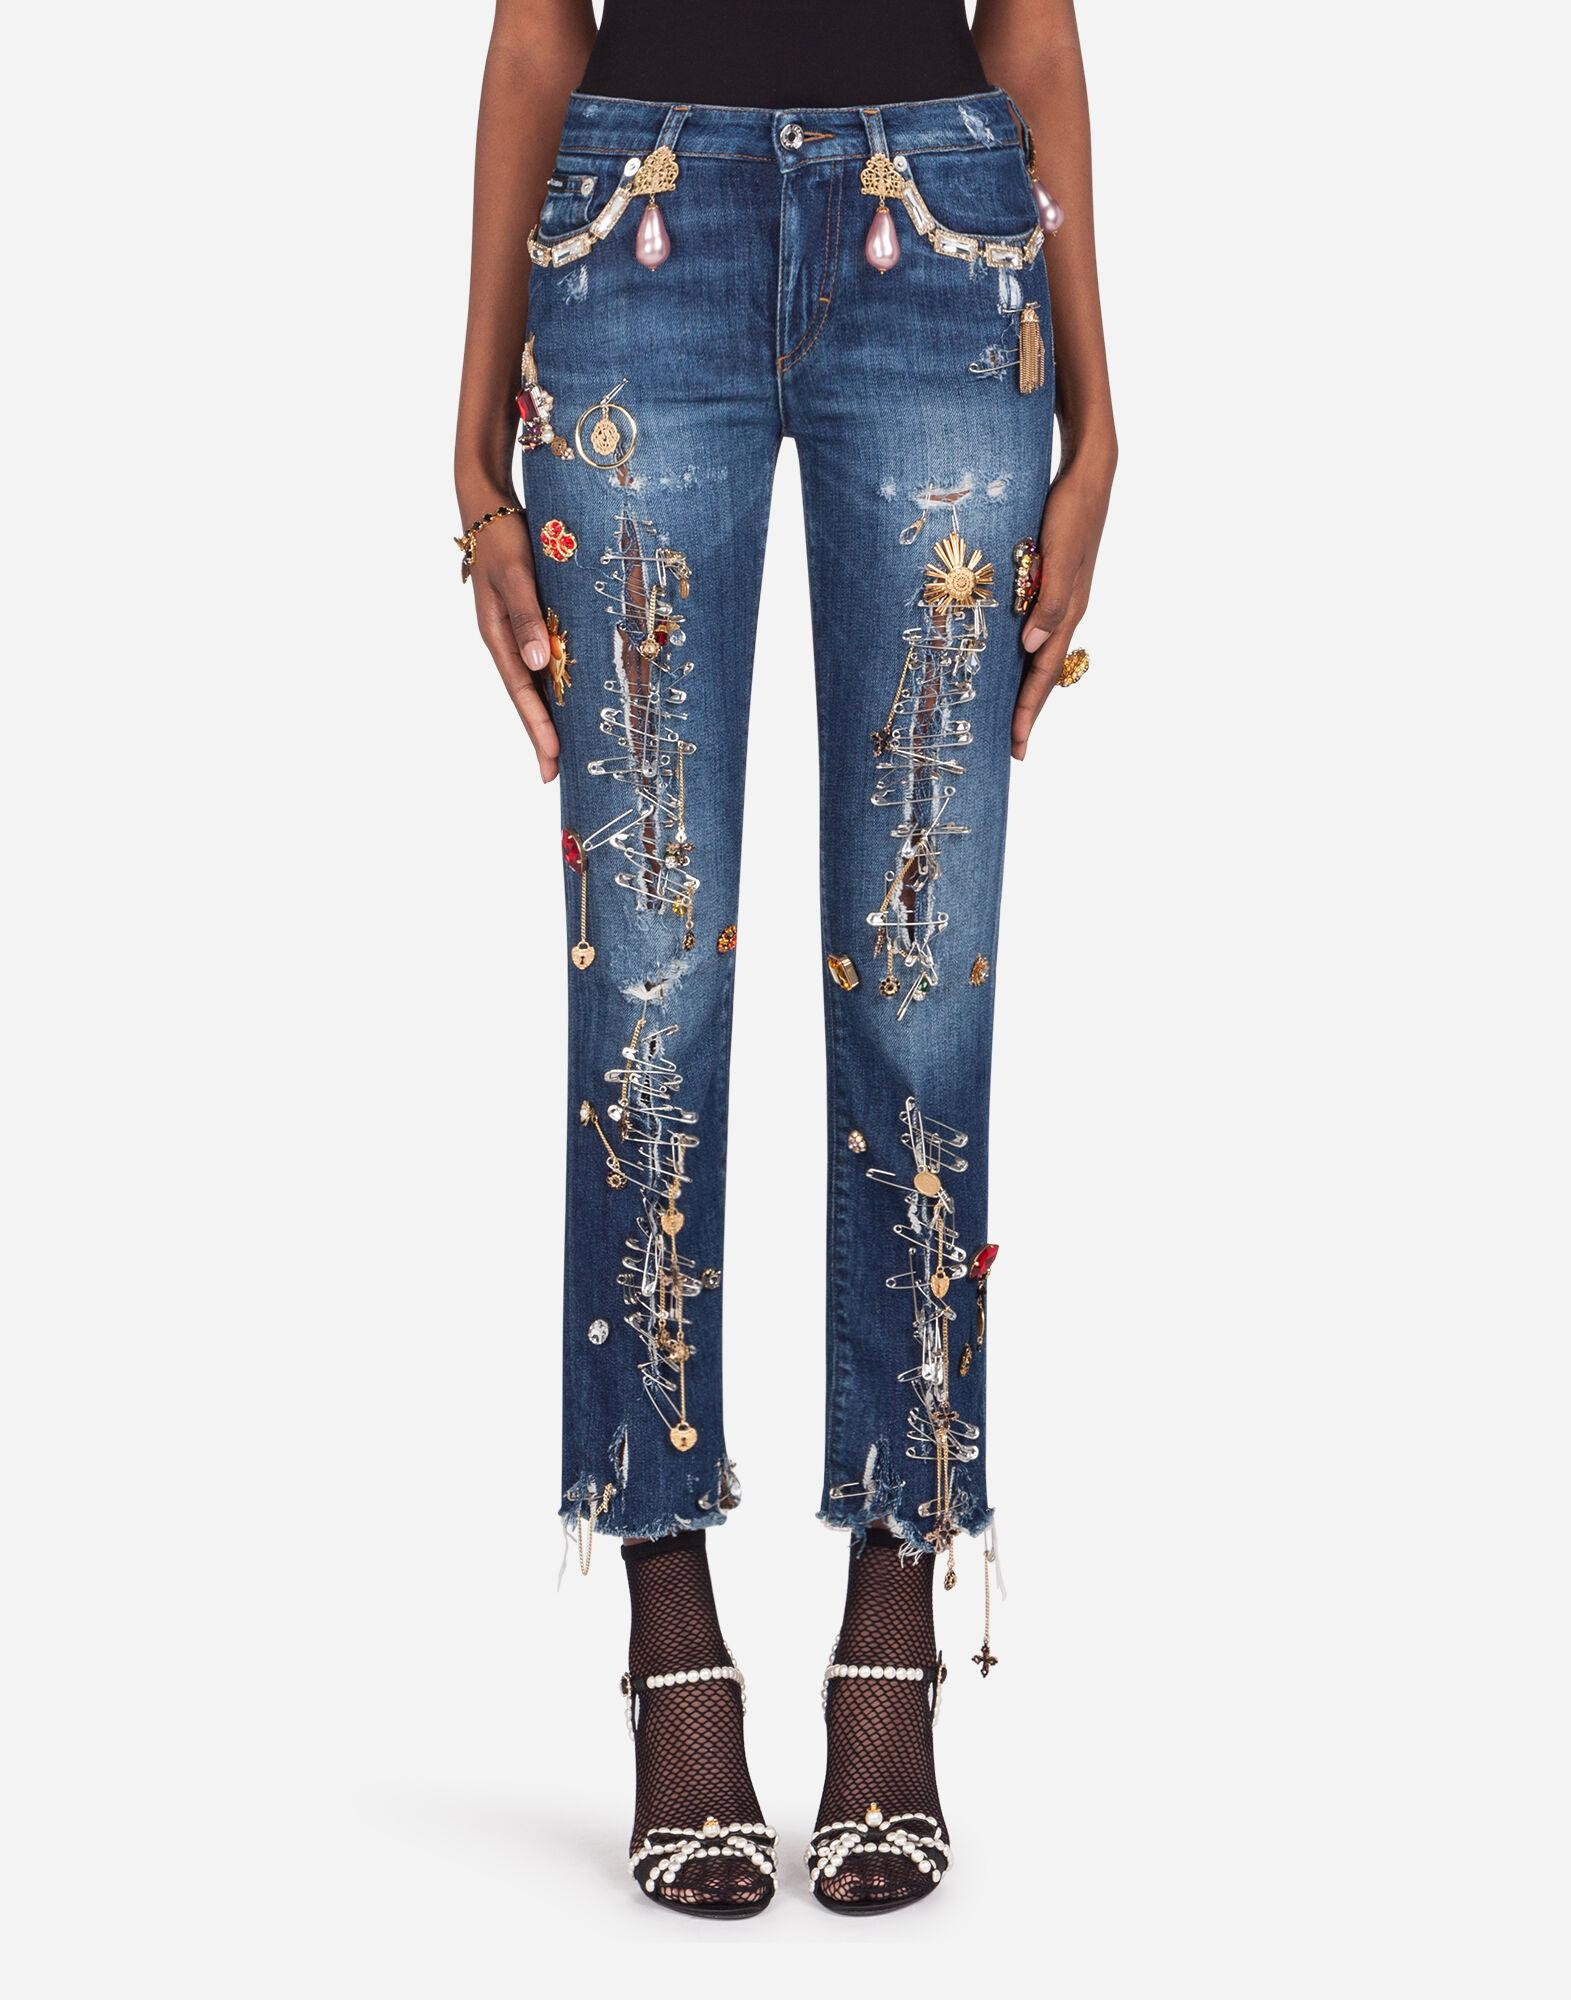 Pretty fit jeans with decoration